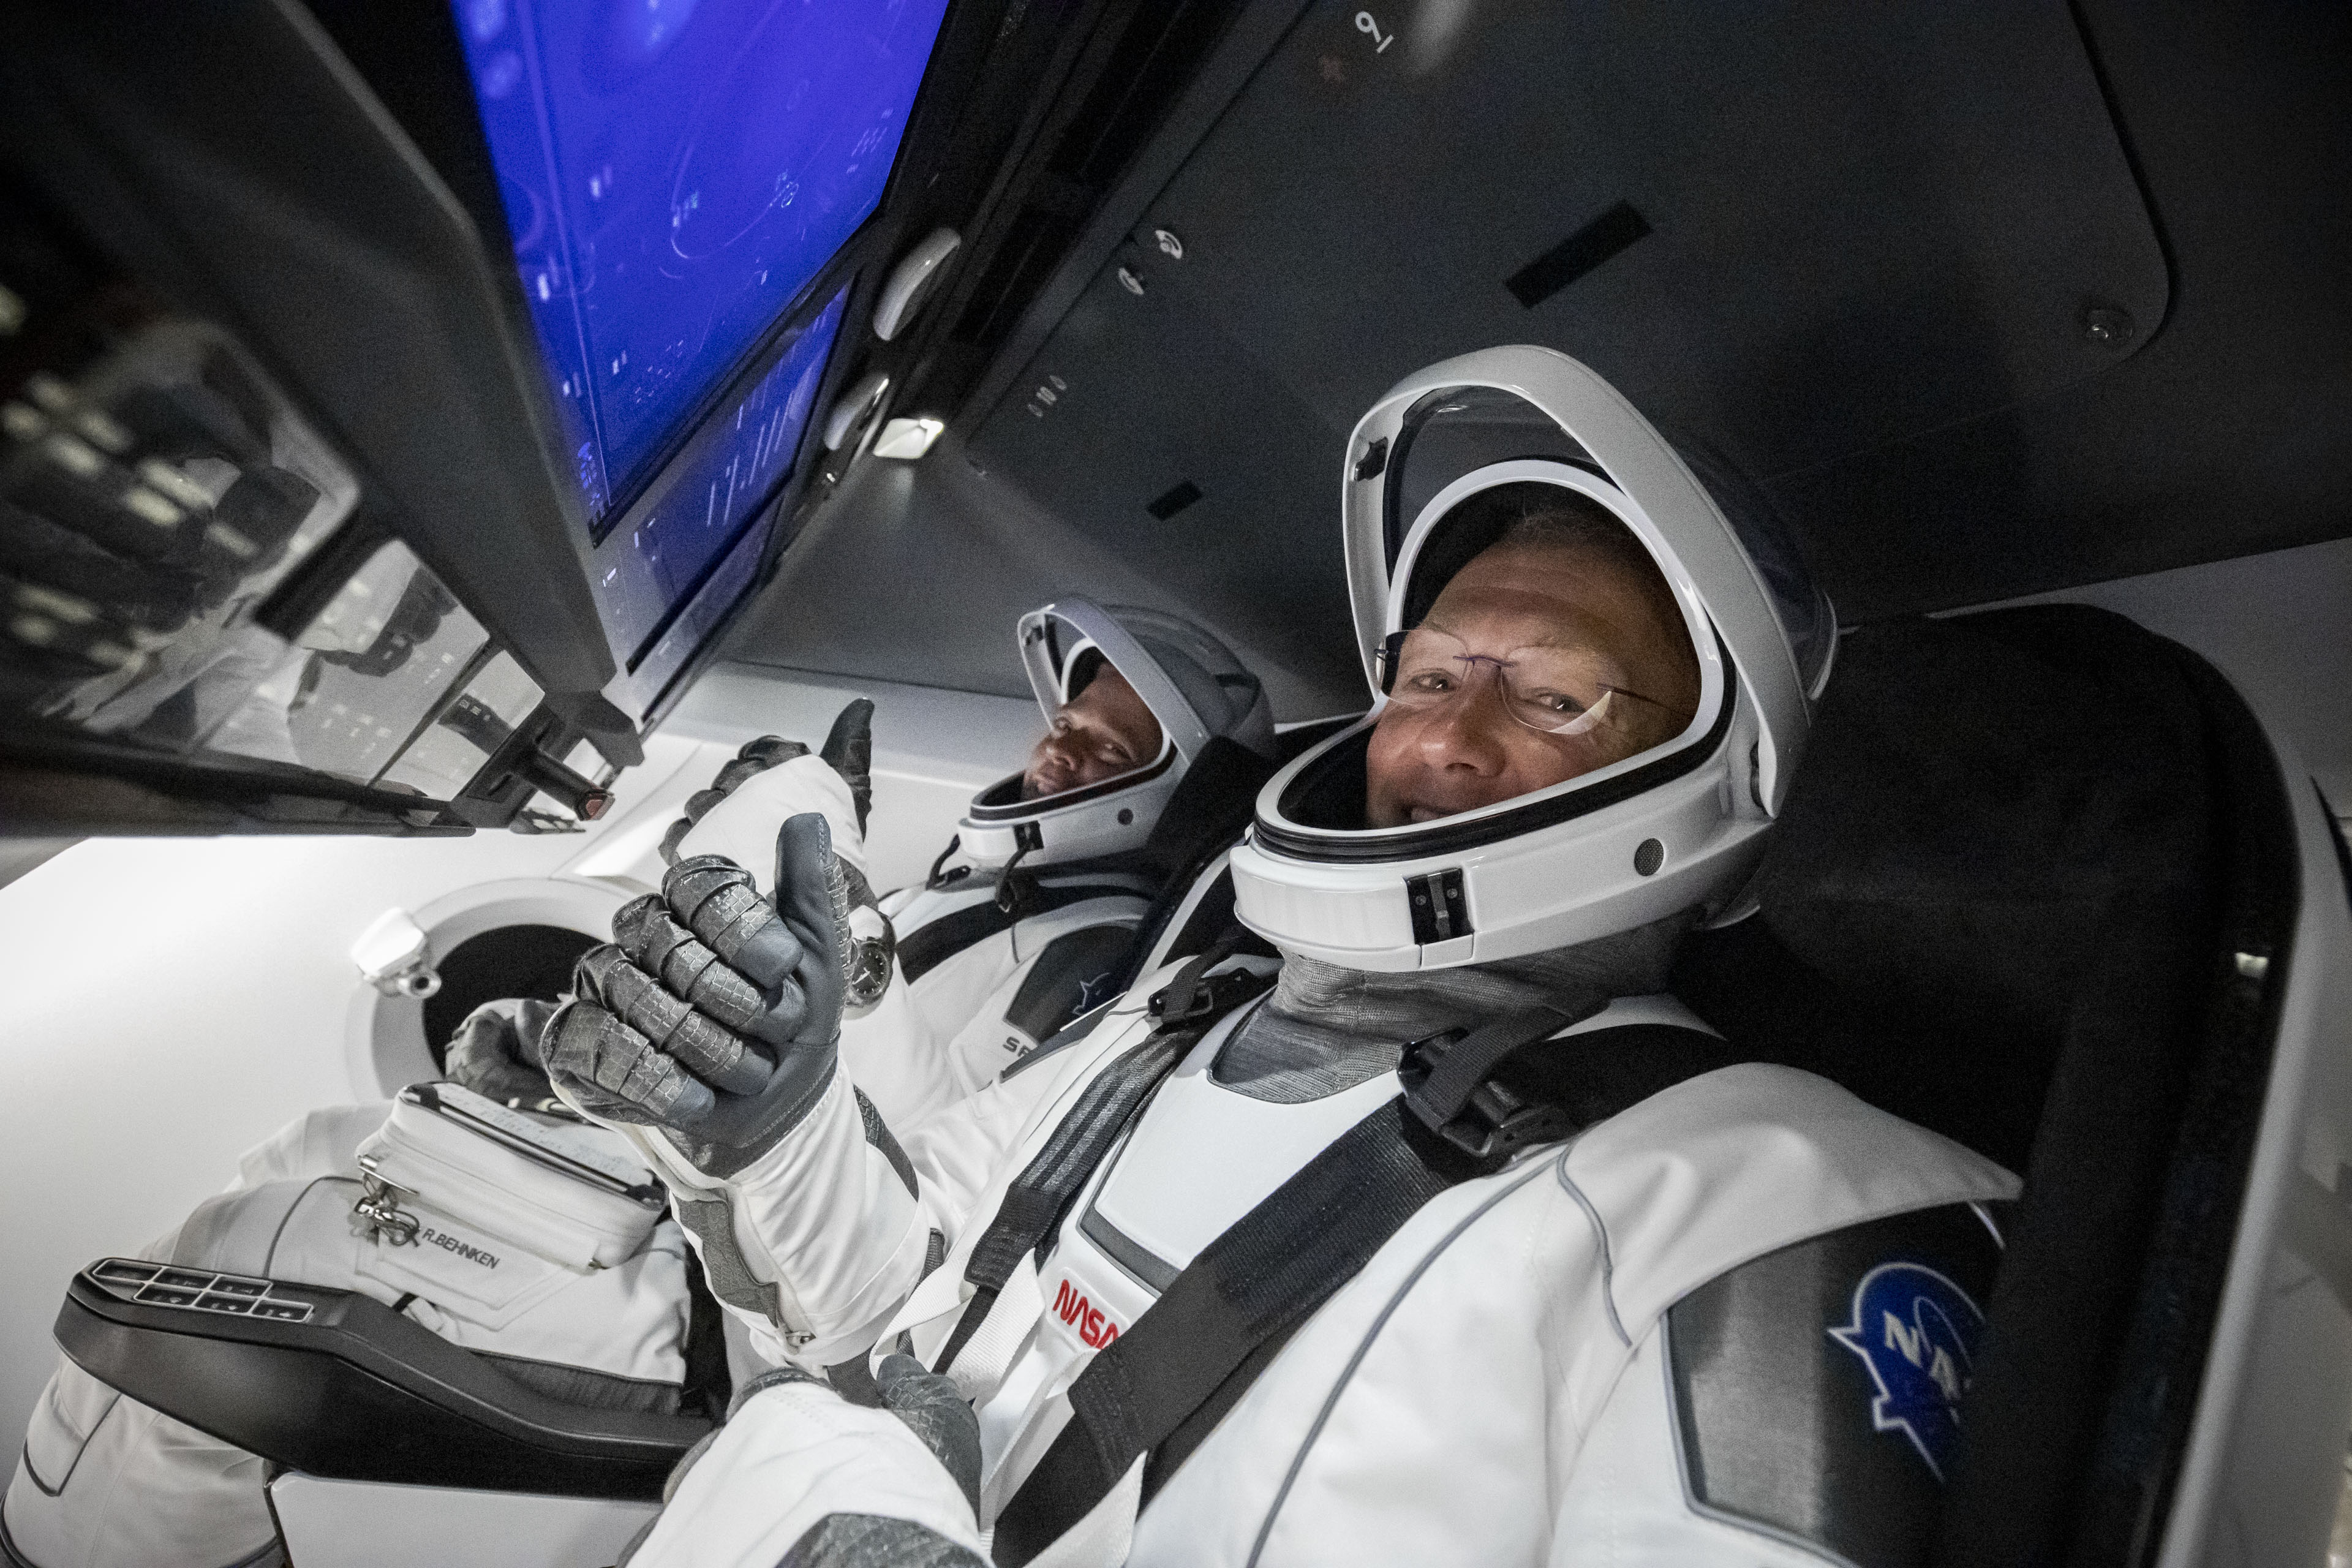 NASA astronaut Doug Hurley gives a thumbs up as he and his Demo-2 crewmate Bob Behnken sit inside the capsule ahead of their second launch attempt on May 30, 2020.